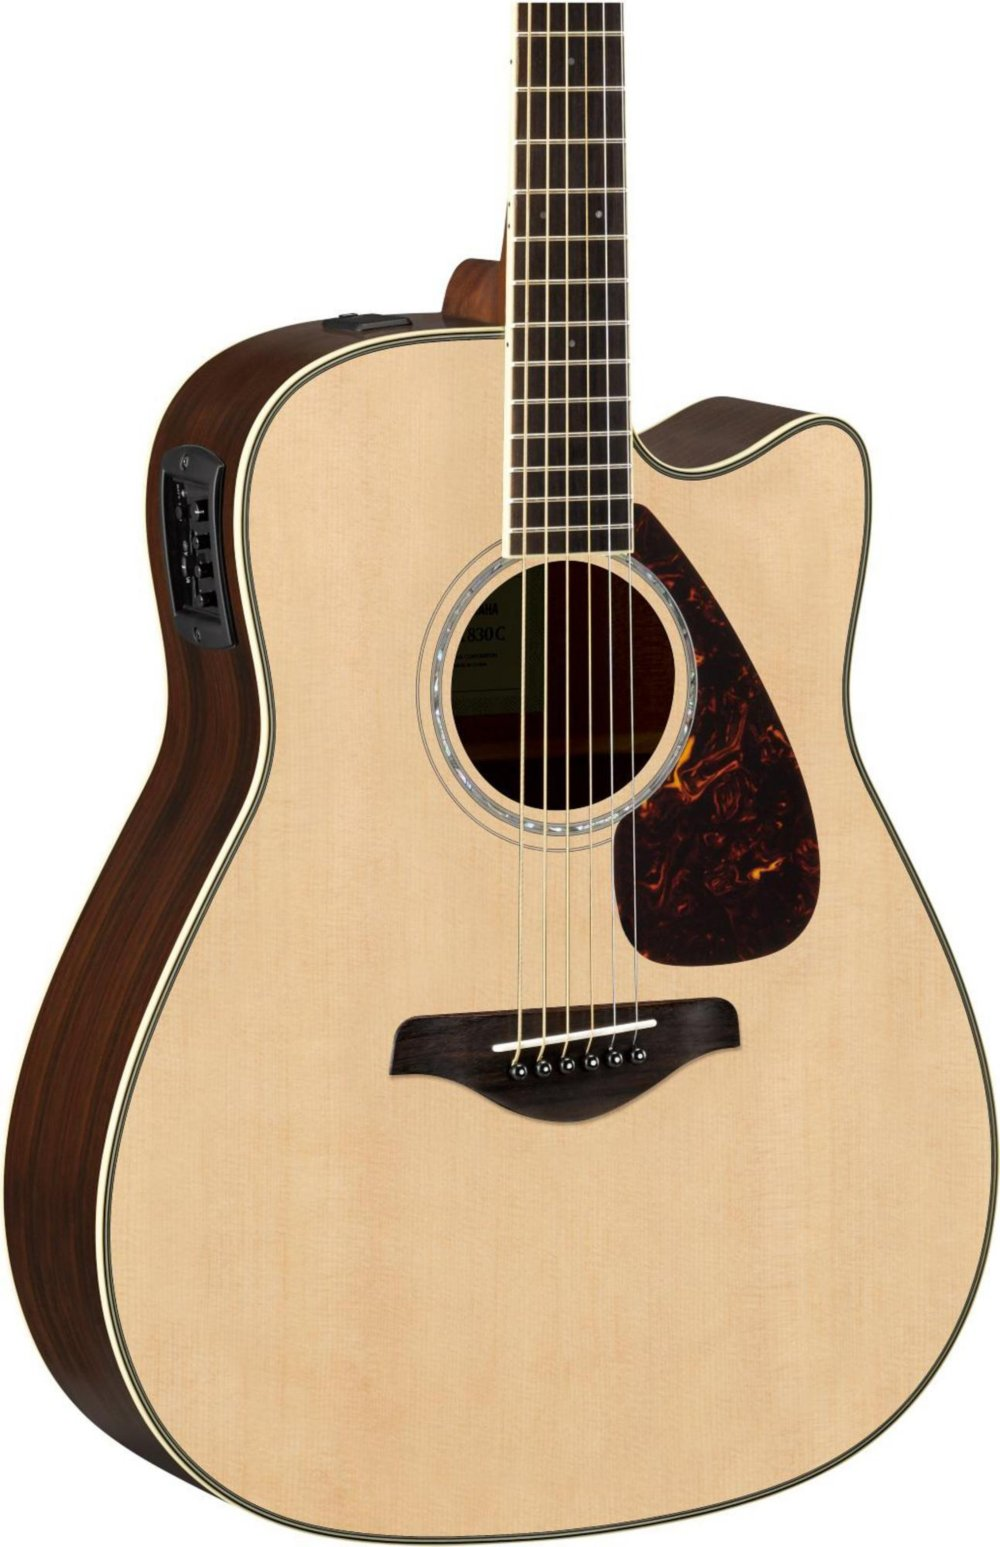 Enthusiastic Yamaha Fgx820c Acoustic-electric Guitar Always Buy Good Acoustic Electric Guitars